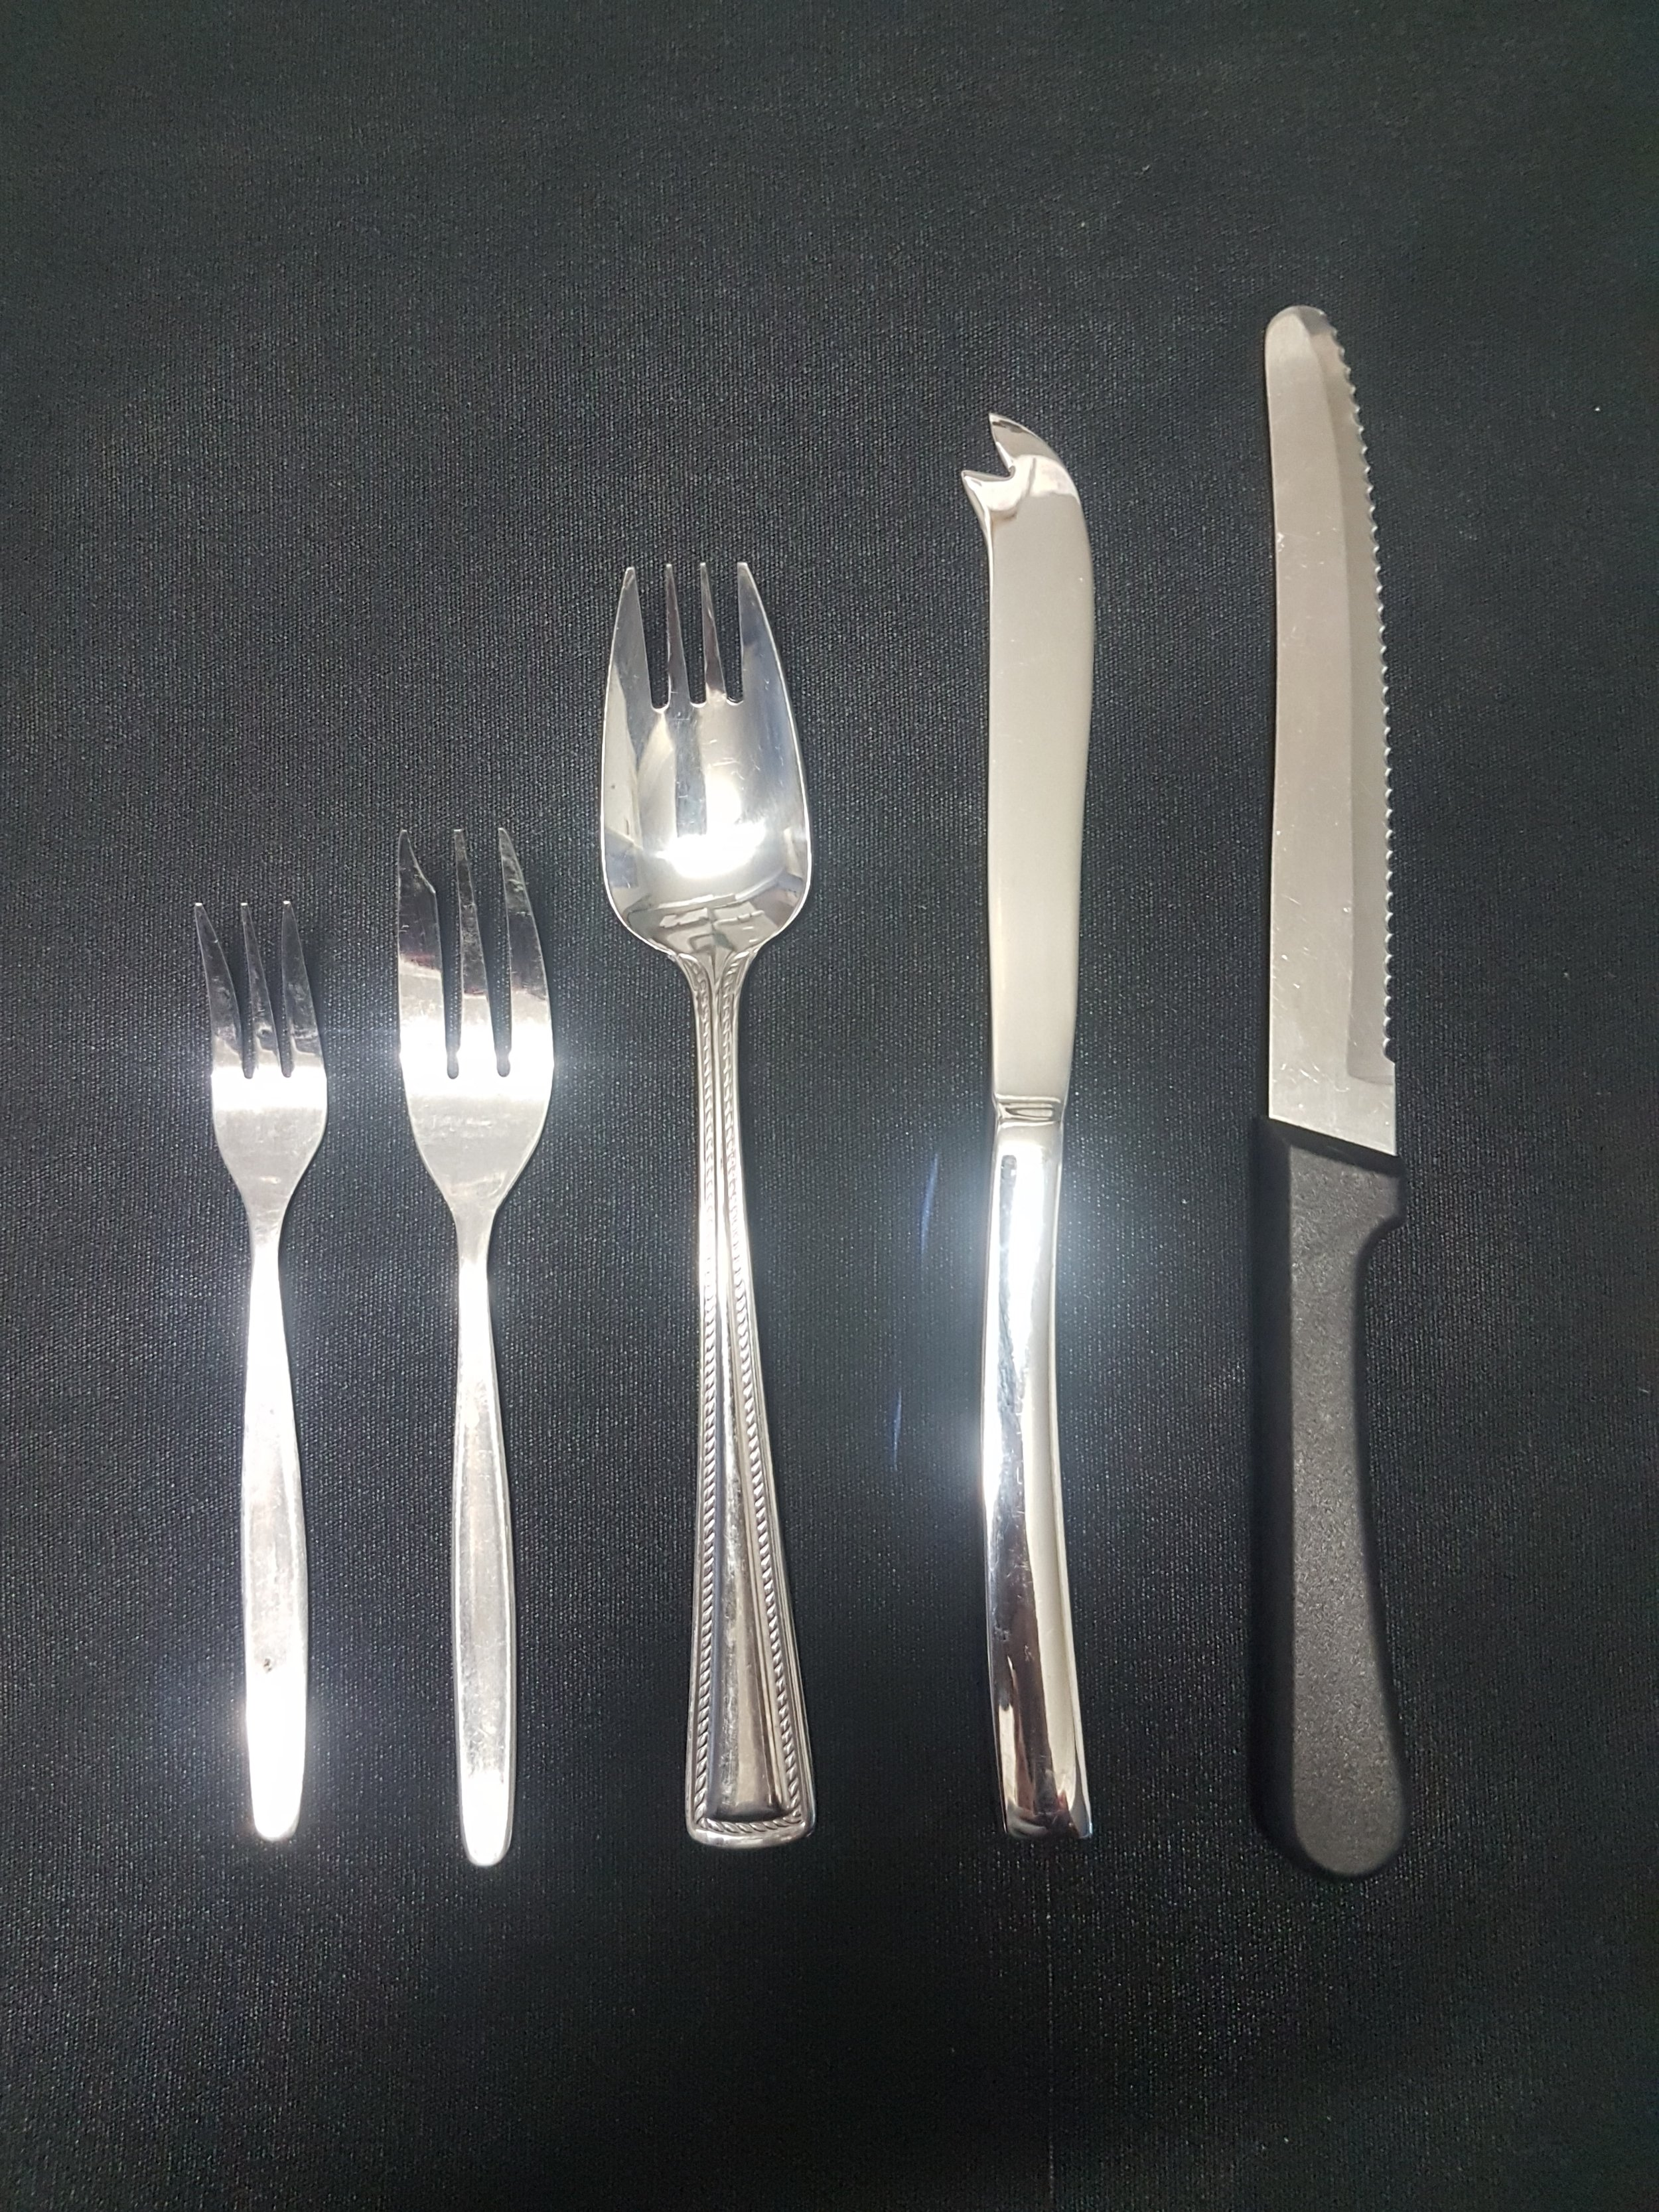 - Oyster fork .44c eaSmall cake fork .39c eaLarge cake fork .44c eaCheese knife .55c eaSteak knife .44c ea